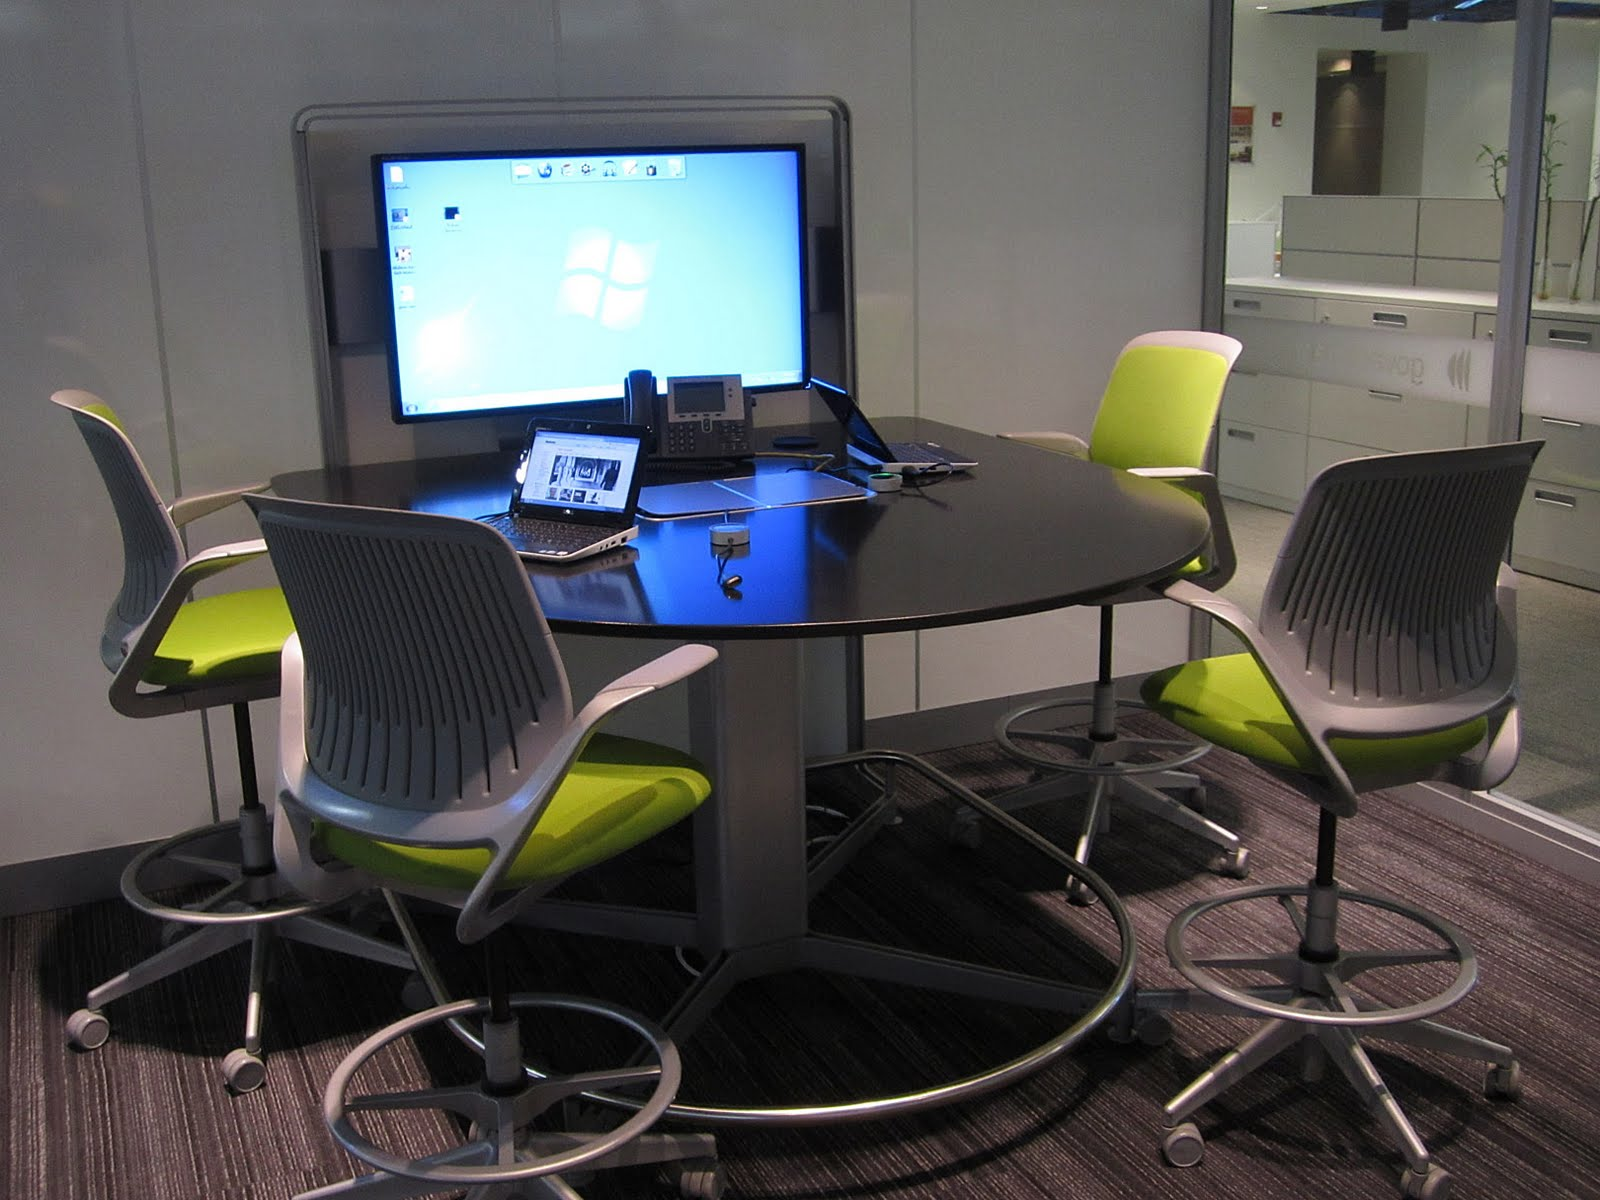 Innovative Classroom Seating Arrangements : The learning space spaces by design